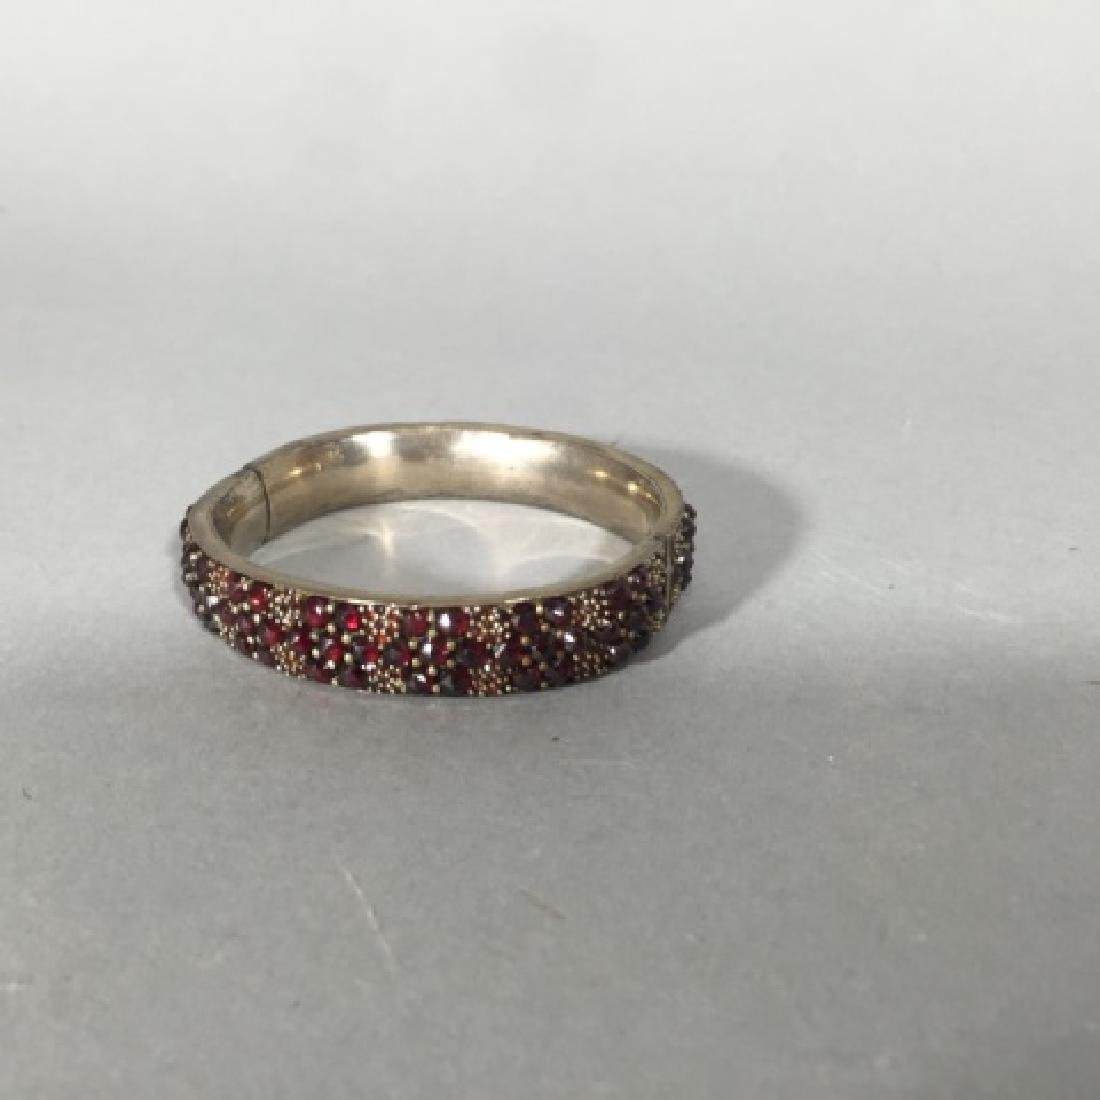 Antique 19th C Rose Cut Garnet Bangle Bracelet - 4